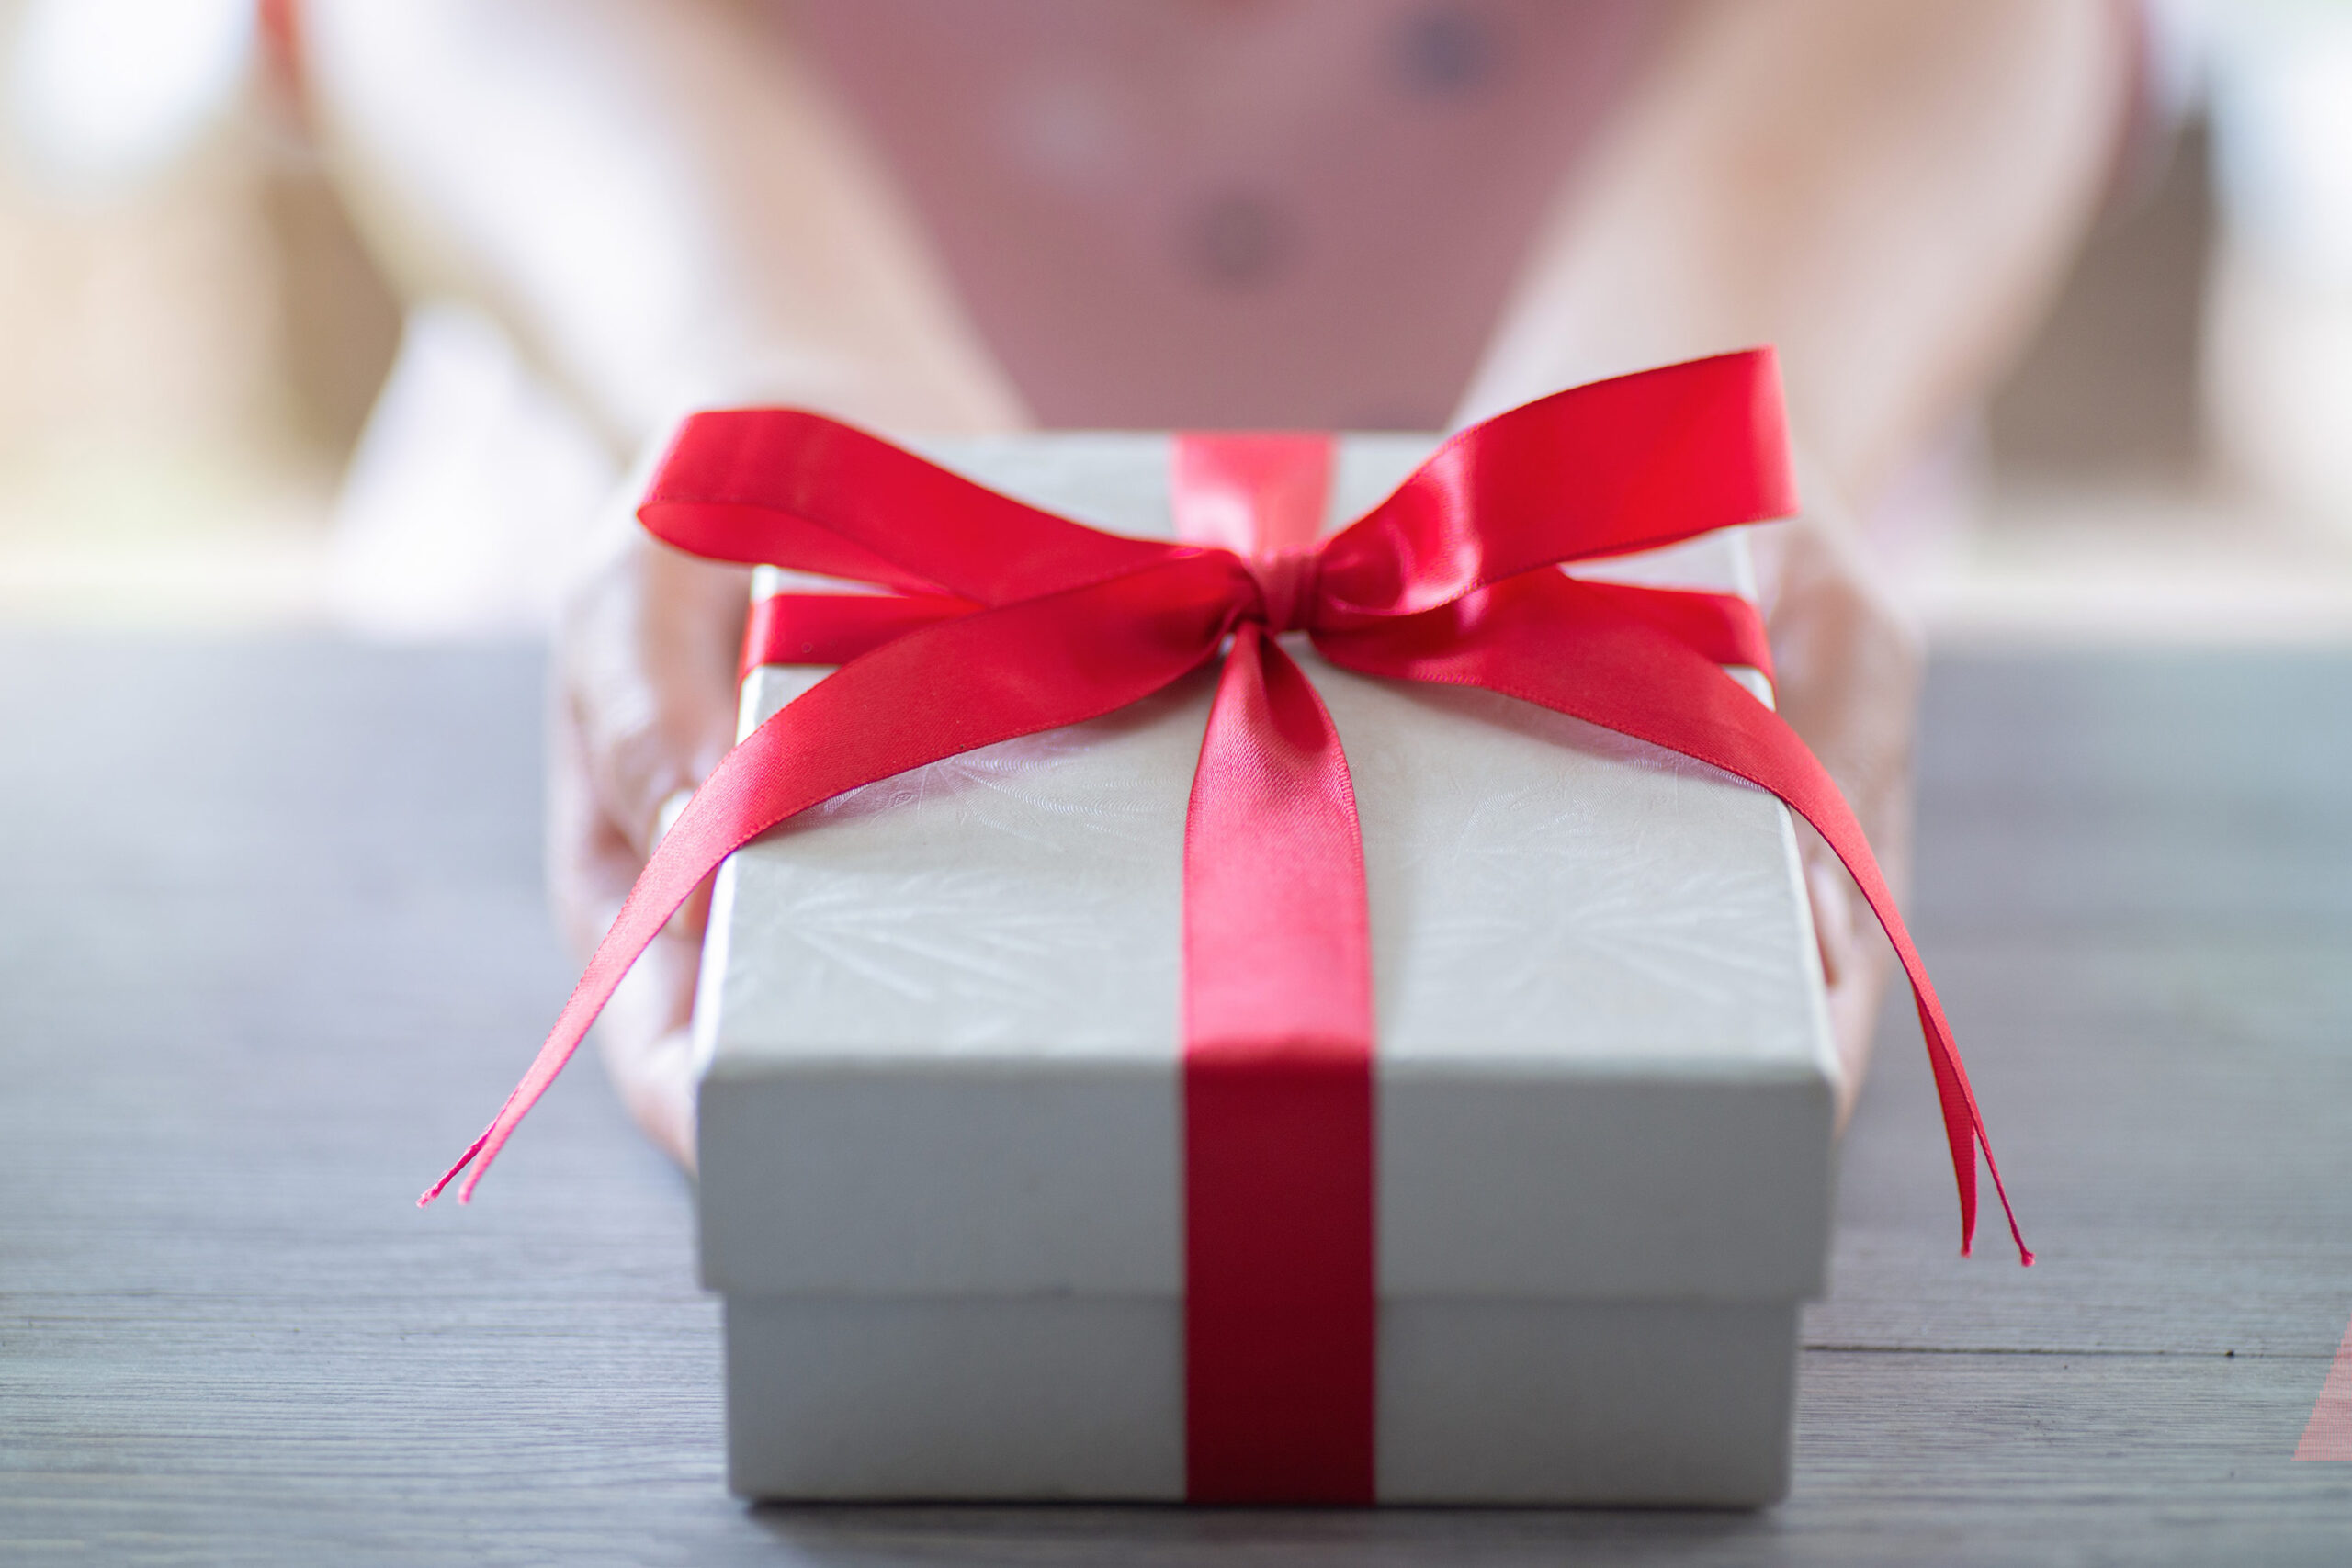 A gift is presented.